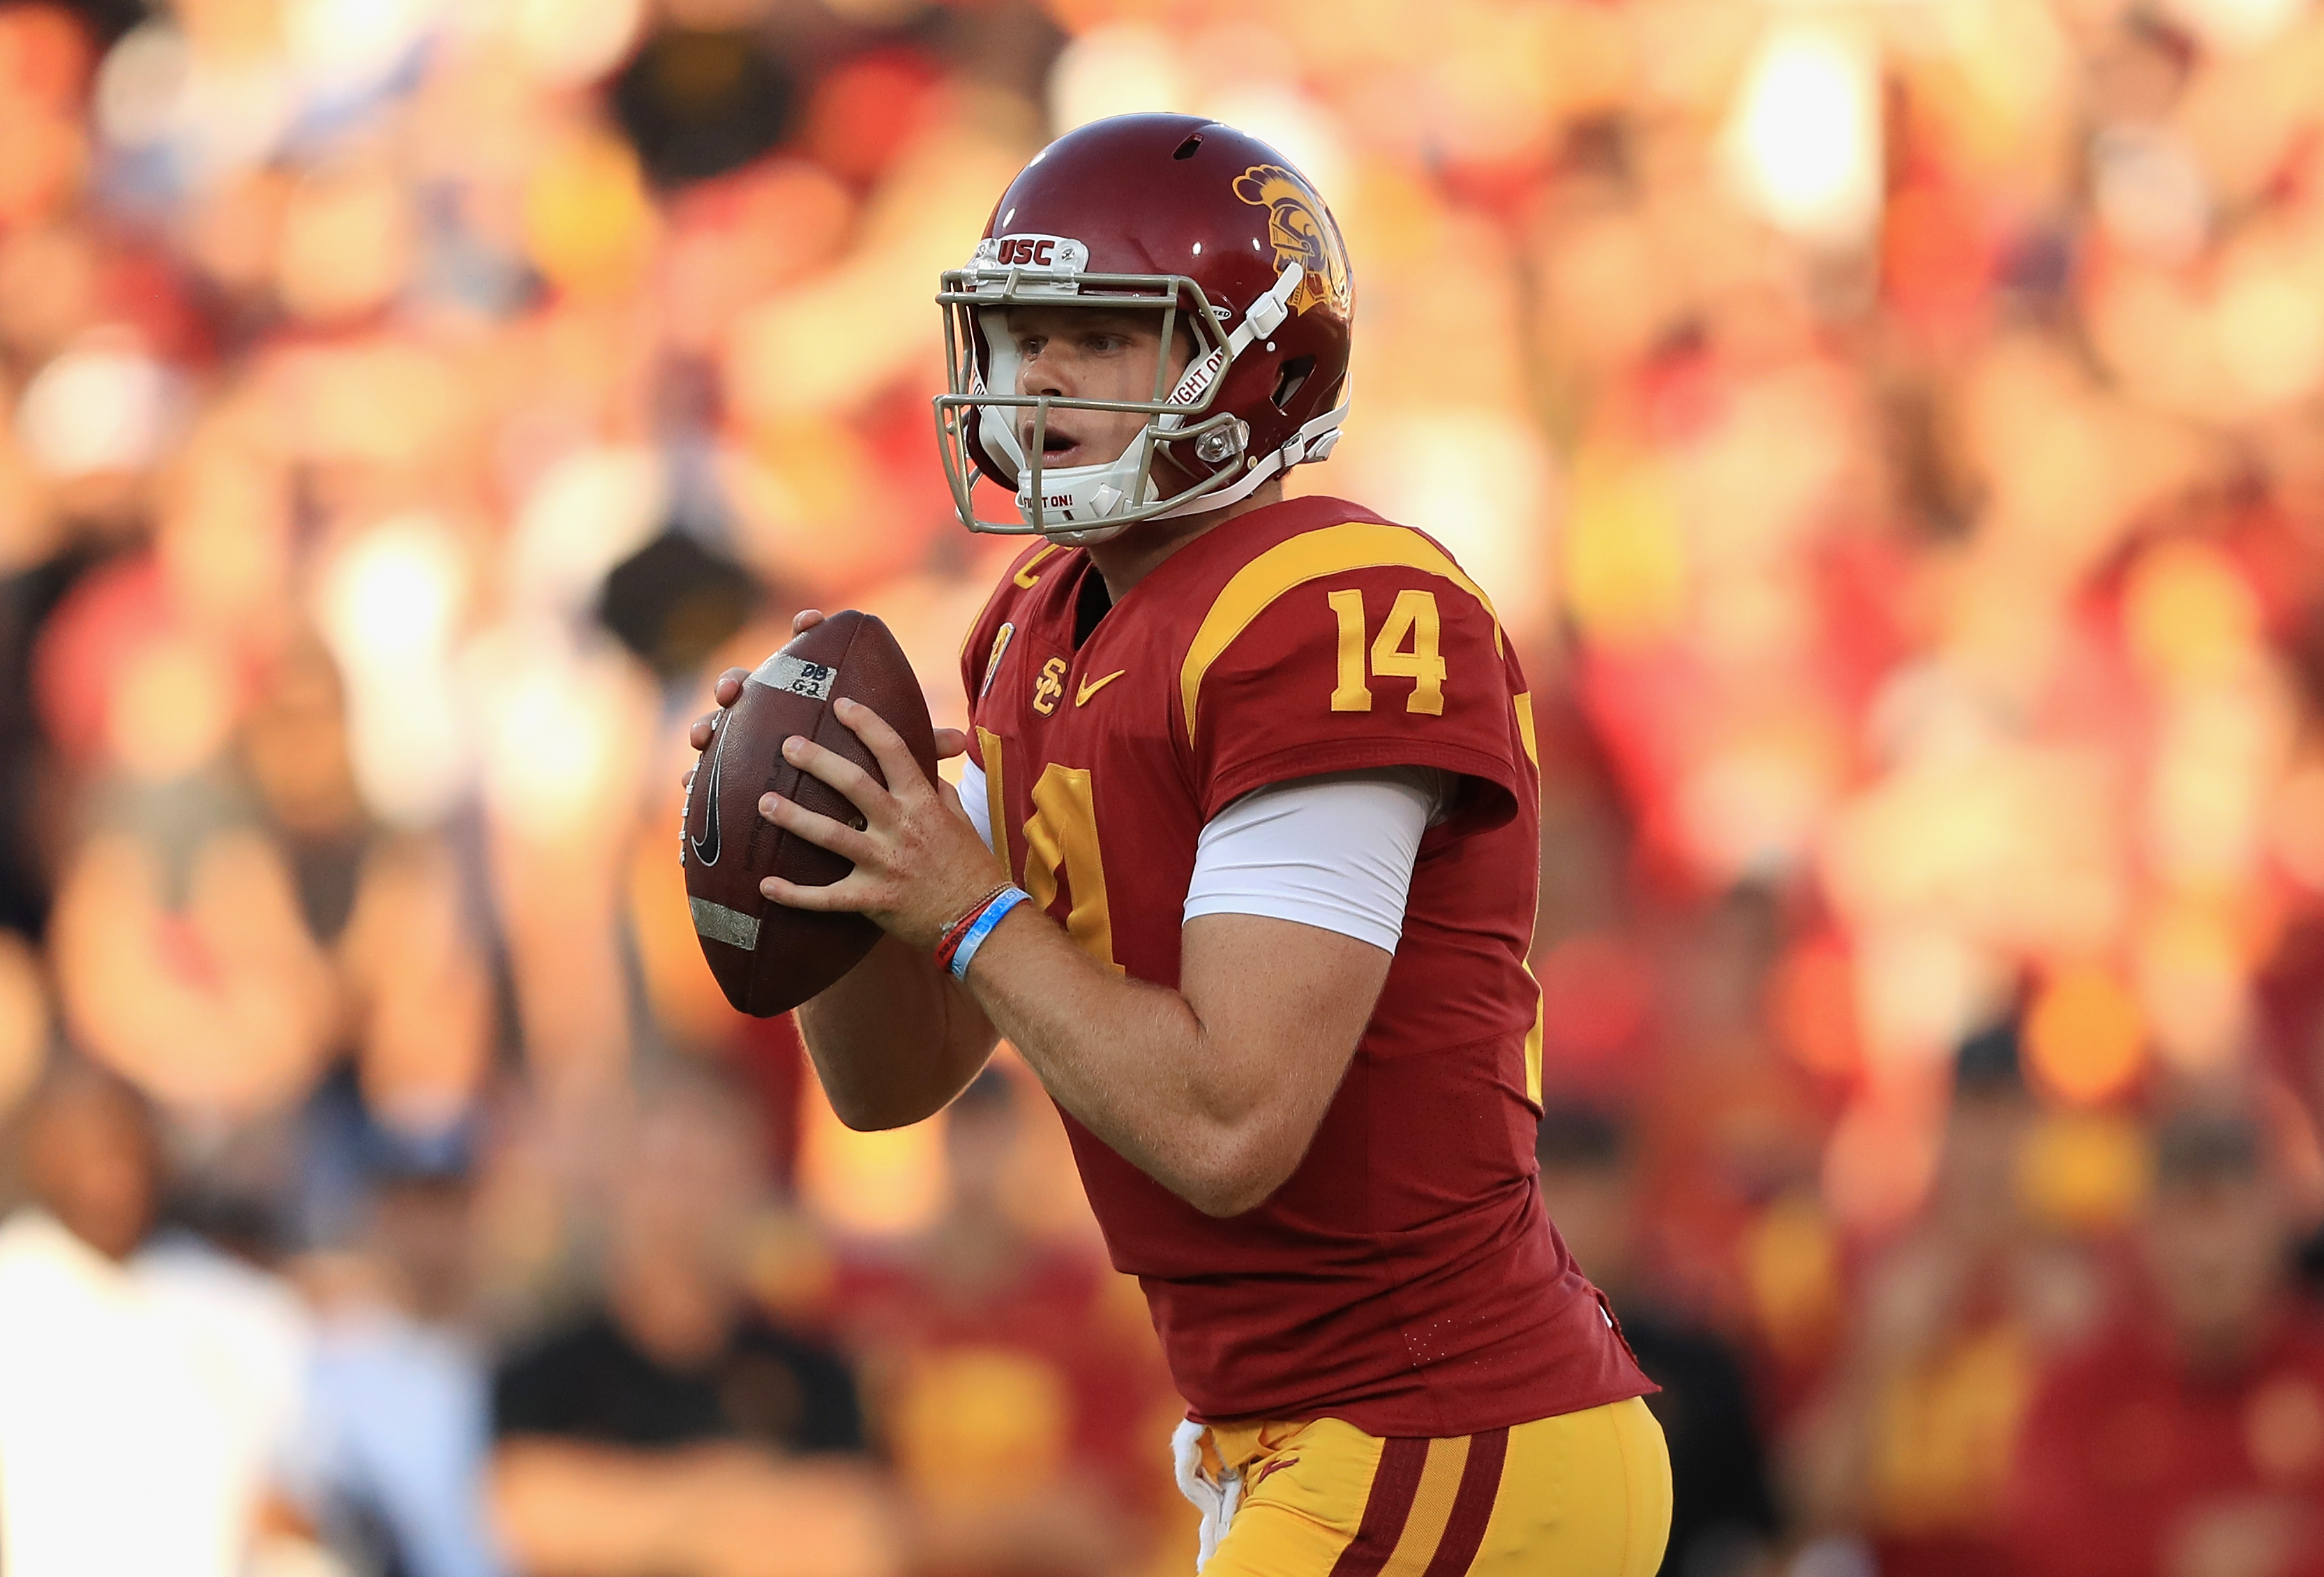 Sam Darnold could stay at USC if Browns have first pick